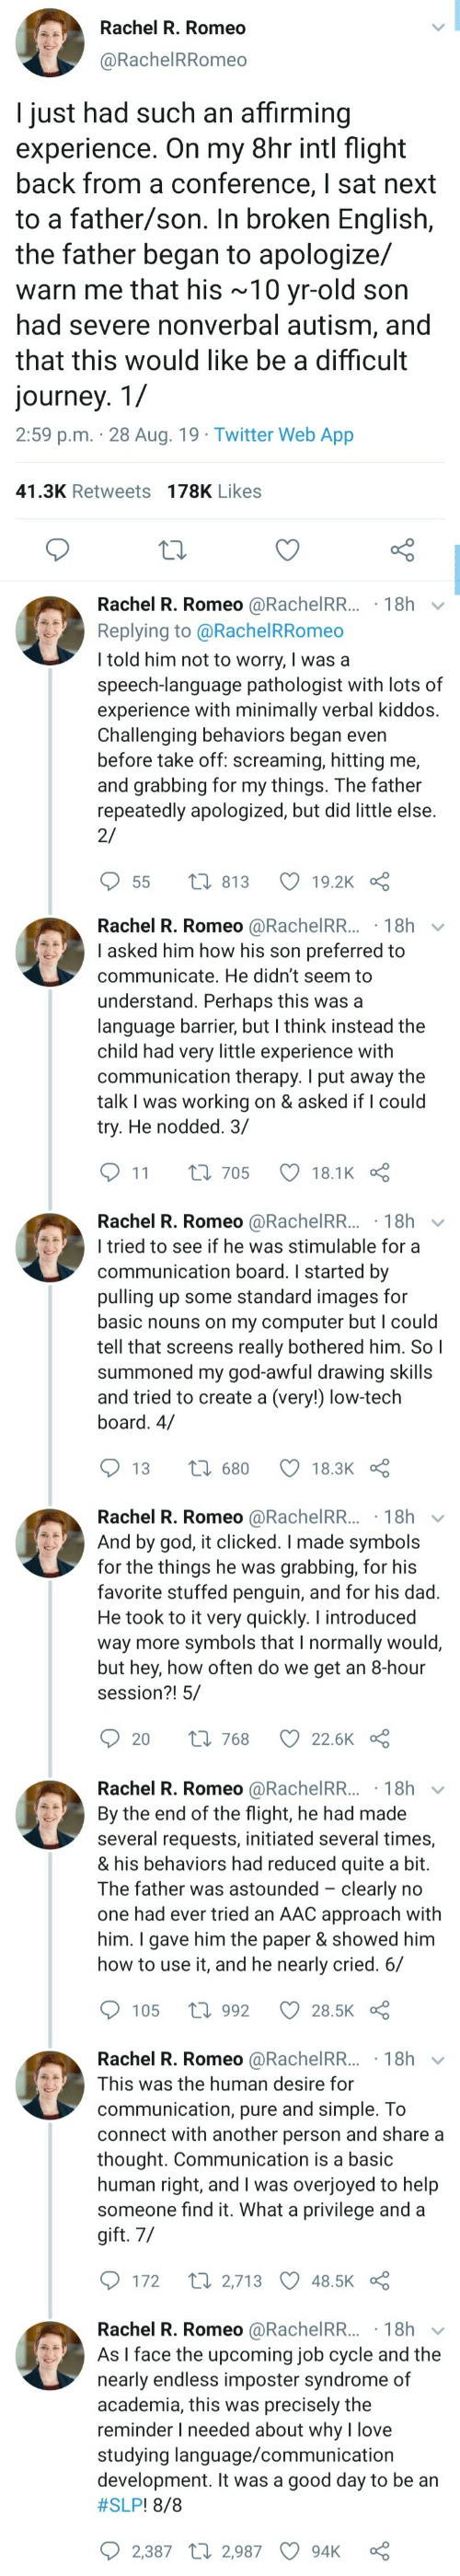 How To: Rachel R. Romeo  @RachelRRomeo  I just had such an affirming  experience. On my 8hr intl flight  back from a conference, I sat next  to a father/son. In broken English,  the father began to apologize/  warn me that his ~10 yr-old son  had severe nonverbal autism, and  that this would like be a difficult  journey. 1/  2:59 p.m. 28 Aug. 19 Twitter Web App  41.3K Retweets 178K Likes  Rachel R. Romeo @RachelRR... 18h  Replying to @Rachel RRomeo  I told him not to worry, I was a  speech-language pathologist with lots of  experience with minimally verbal kiddos.  Challenging behaviors began even  before take off: screaming, hitting me,  and grabbing for my things. The father  repeatedly apologized, but did little else  2/  t 813  19.2K  55   Rachel R. Romeo @RachelRR...18h  I asked him how his son preferred to  communicate. He didn't seem to  understand. Perhaps this was a  language barrier, but I think instead the  child had very little experience with  communication therapy. I put away the  talk I was working on & asked if I could  try. He nodded. 3/  11  L 705  18.1K  Rachel R. Romeo @RachelRR... 18h  I tried to see if he was stimulable for a  communication board. I started by  pulling up some standard images for  basic nouns on my computer but I could  tell that screens really bothered him. So I  summoned my god-awful drawing skills  and tried to create a (very!) low-tech  board. 4/  1680  13  18.3K  Rachel R. Romeo @RachelRR... 18h  And by god, it clicked. I made symbols  for the things he was  favorite stuffed penguin, and for his dad.  He took to it very quickly. I introduced  way more symbols that I normally would,  but hey, how often do we get an 8-hour  session?! 5/  grabbing, for his  Li 768  20  22.6K   Rachel R. Romeo @RachelRR... 18h  By the end of the flight, he had made  several requests, initiated several times,  & his behaviors had reduced quite a bit.  The father was astounded clearly no  one had ever tried an AAC approach with  him. I gave him the paper & showed him  how to use it, and he nearly cried. 6/  1992  105  28.5K  Rachel R. Romeo @RachelRR... 18h  This was the human desire for  communication, pure and simple. To  connect with another person and share a  thought. Communication is a basic  human right, and I was overjoyed to help  someone find it. What a privilege and a  gift. 7/  t 2,713 48.5K  172  Rachel R. Romeo @RachelRR... 18h  As I face the upcoming job cycle and the  nearly endless imposter syndrome of  academia, this was precisely the  reminder I needed about why l love  studying language/communication  development. It was a good day to be an  #SLP ! 8/8  2,387 2,987  94K